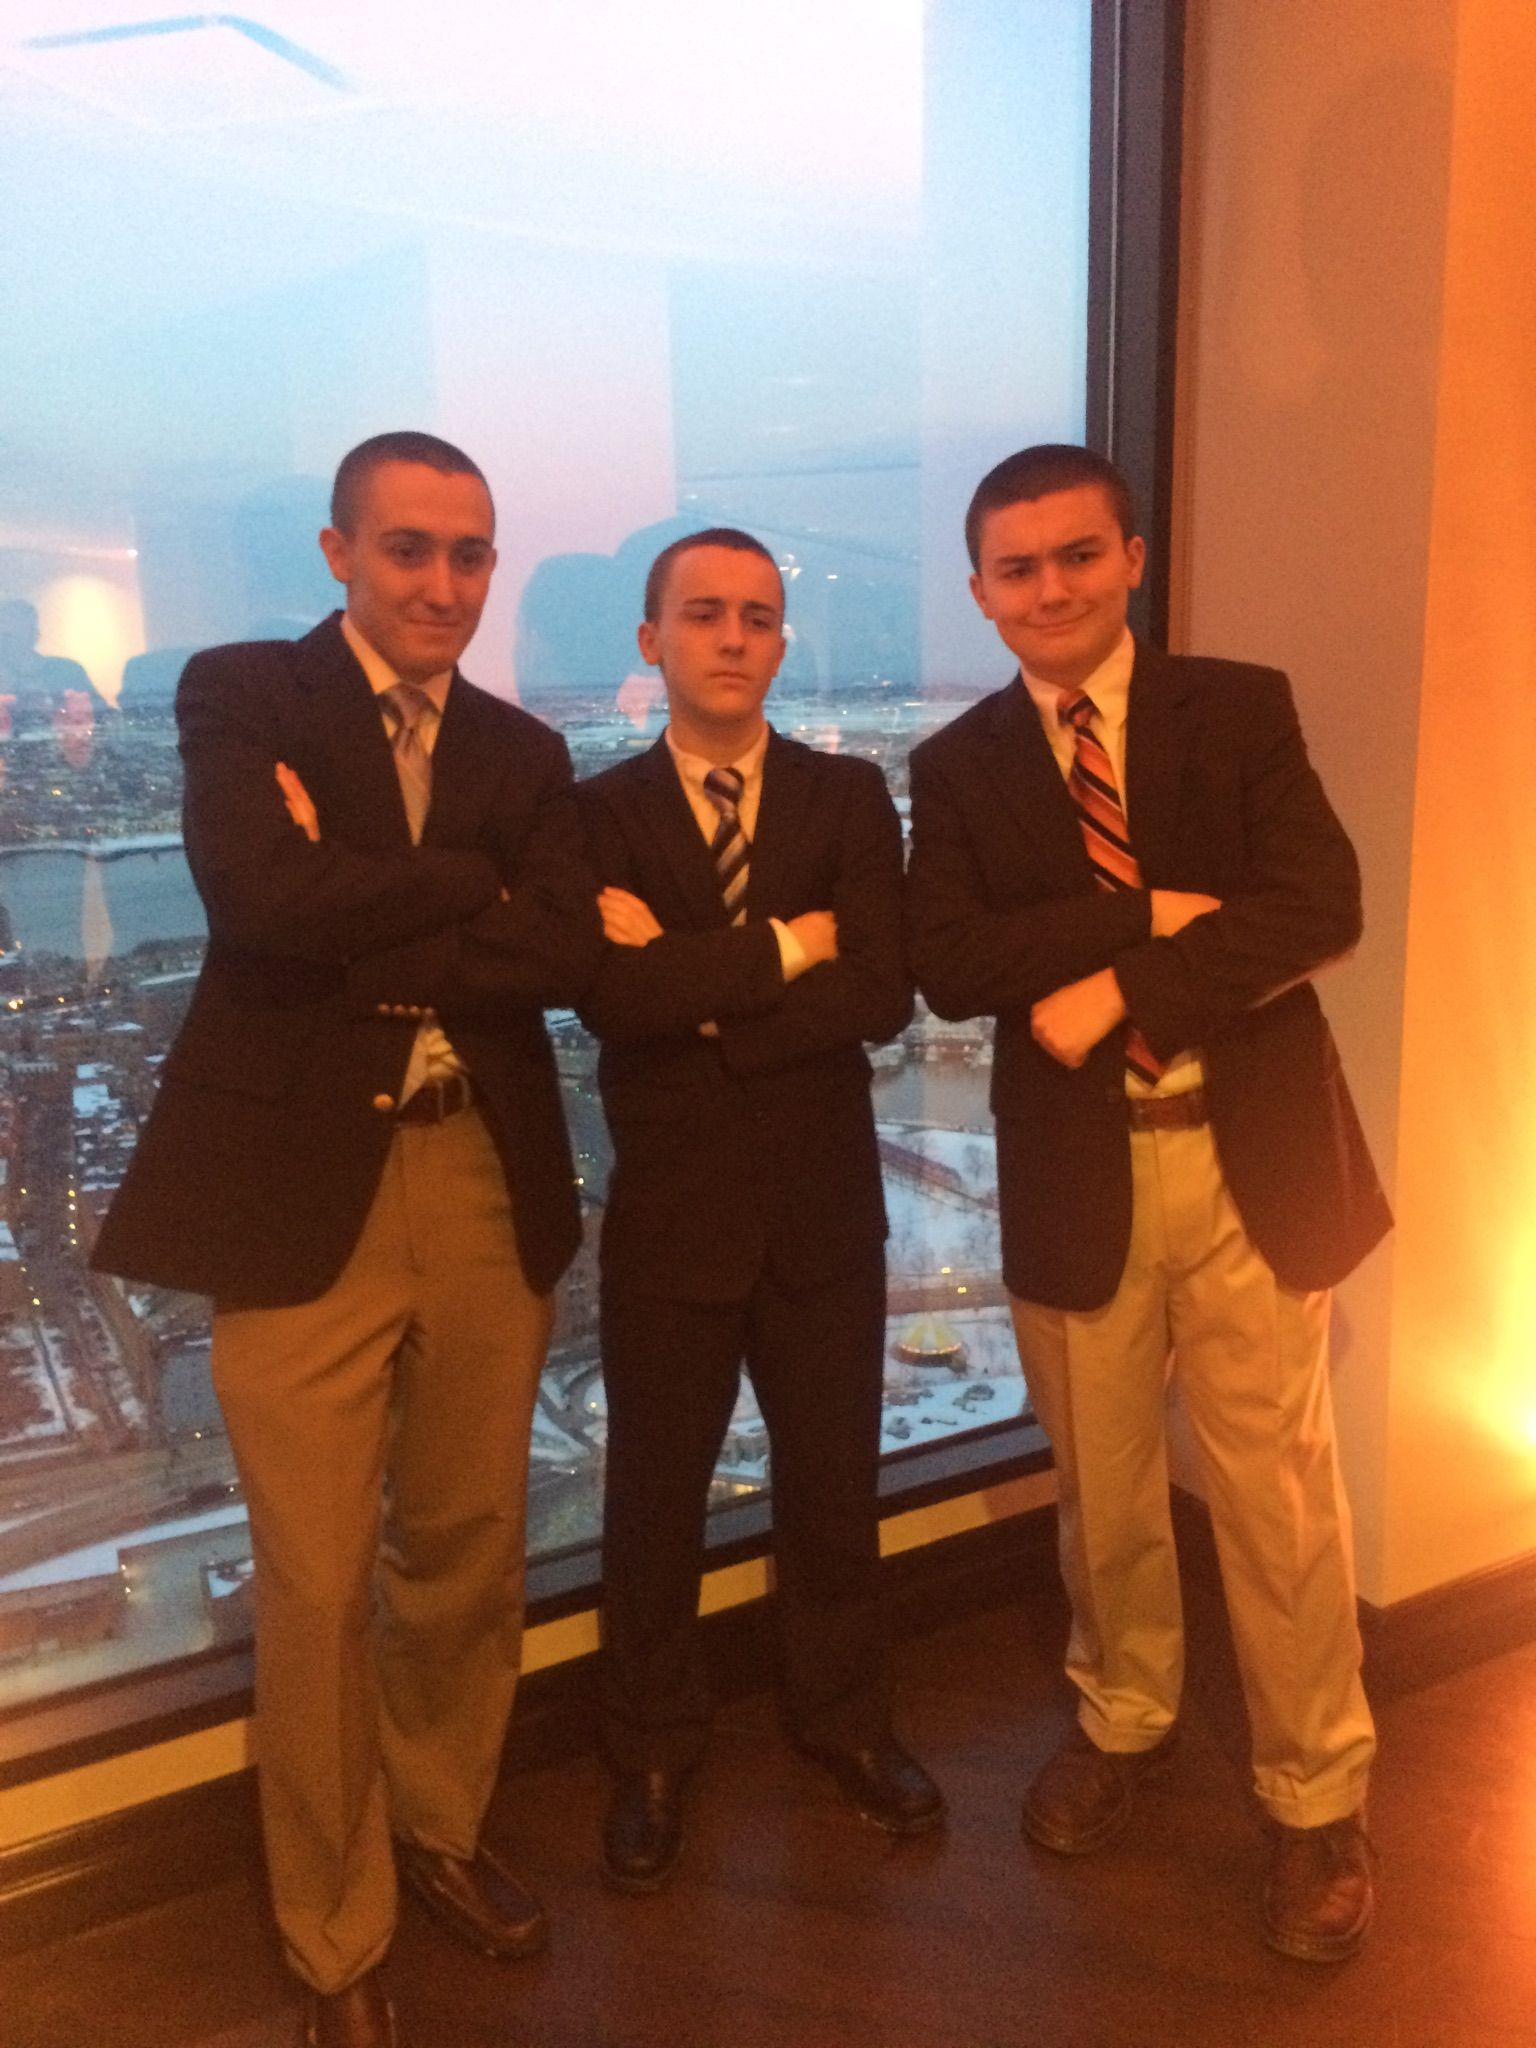 The Hines boys (left to right): Zak (21), Jonny (14), and Tyler (16) at our cousin's wedding in March 2015. We can suit up with the best of 'em!